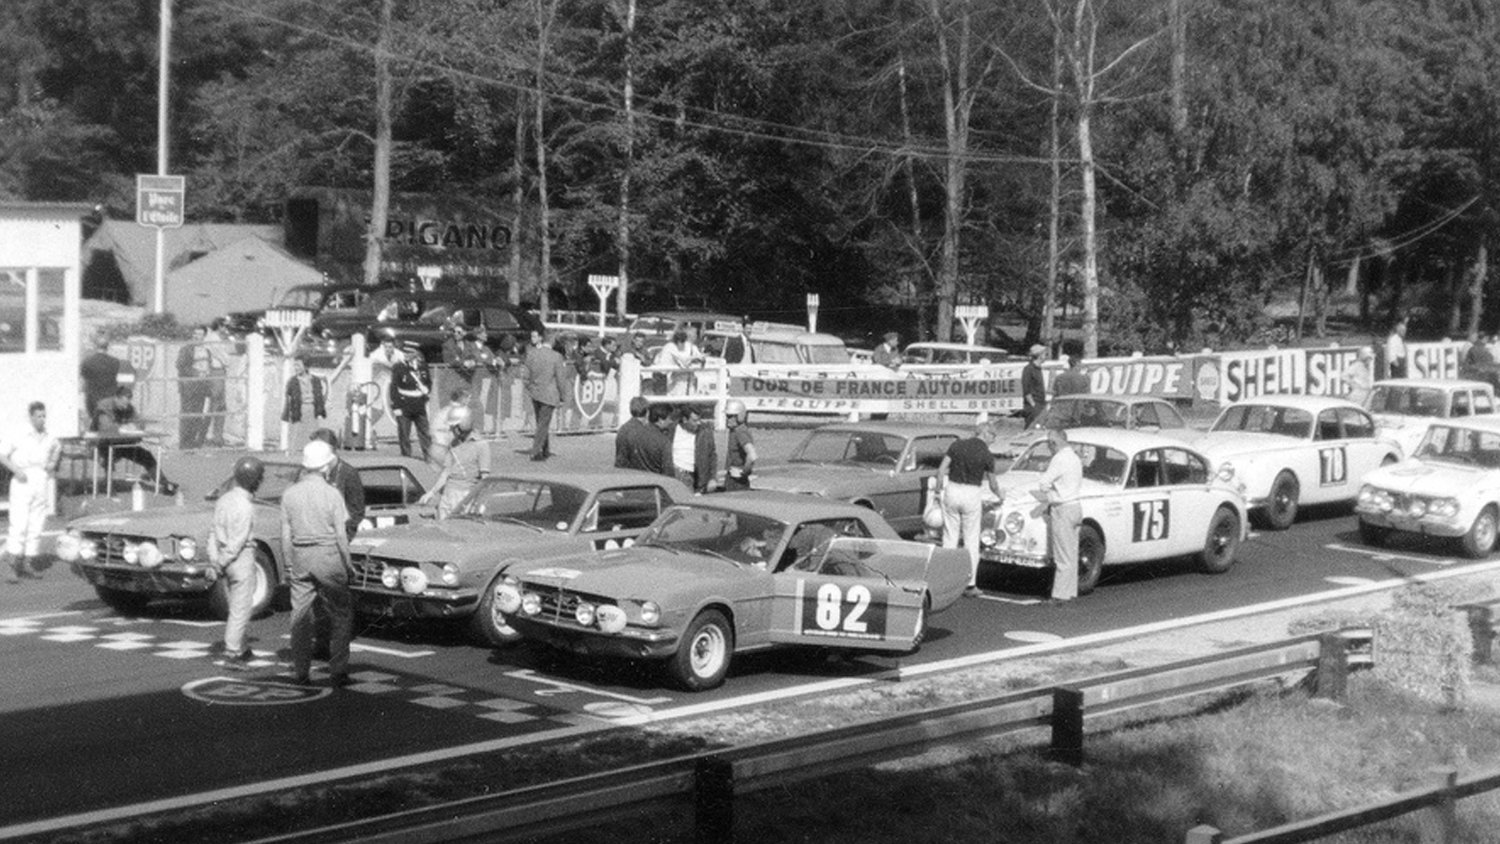 The Alan Mann-prepped Mustangs in front, with archrival Jaguar Mk. II sedans behind them. The fourth Mustang (second row) was entered by Ford of France.